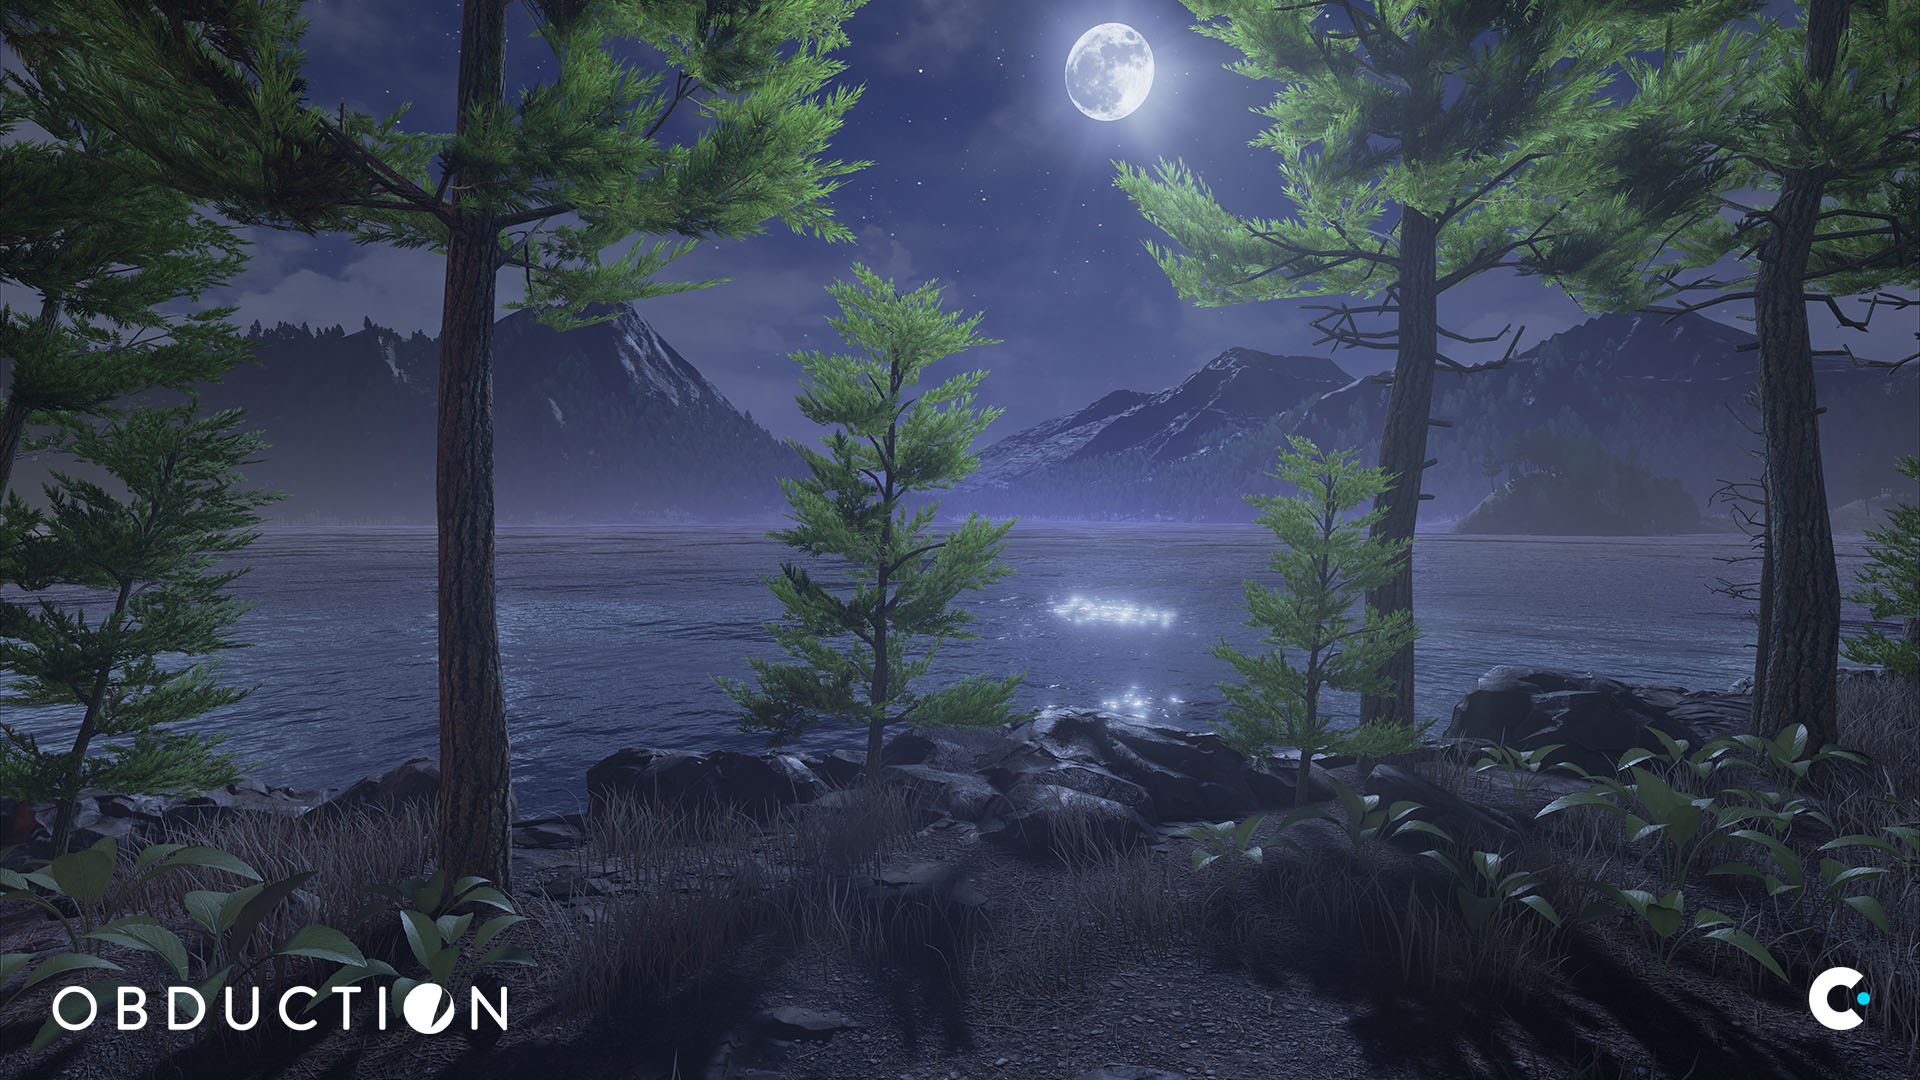 obduction game night landscape wallpaper 68032